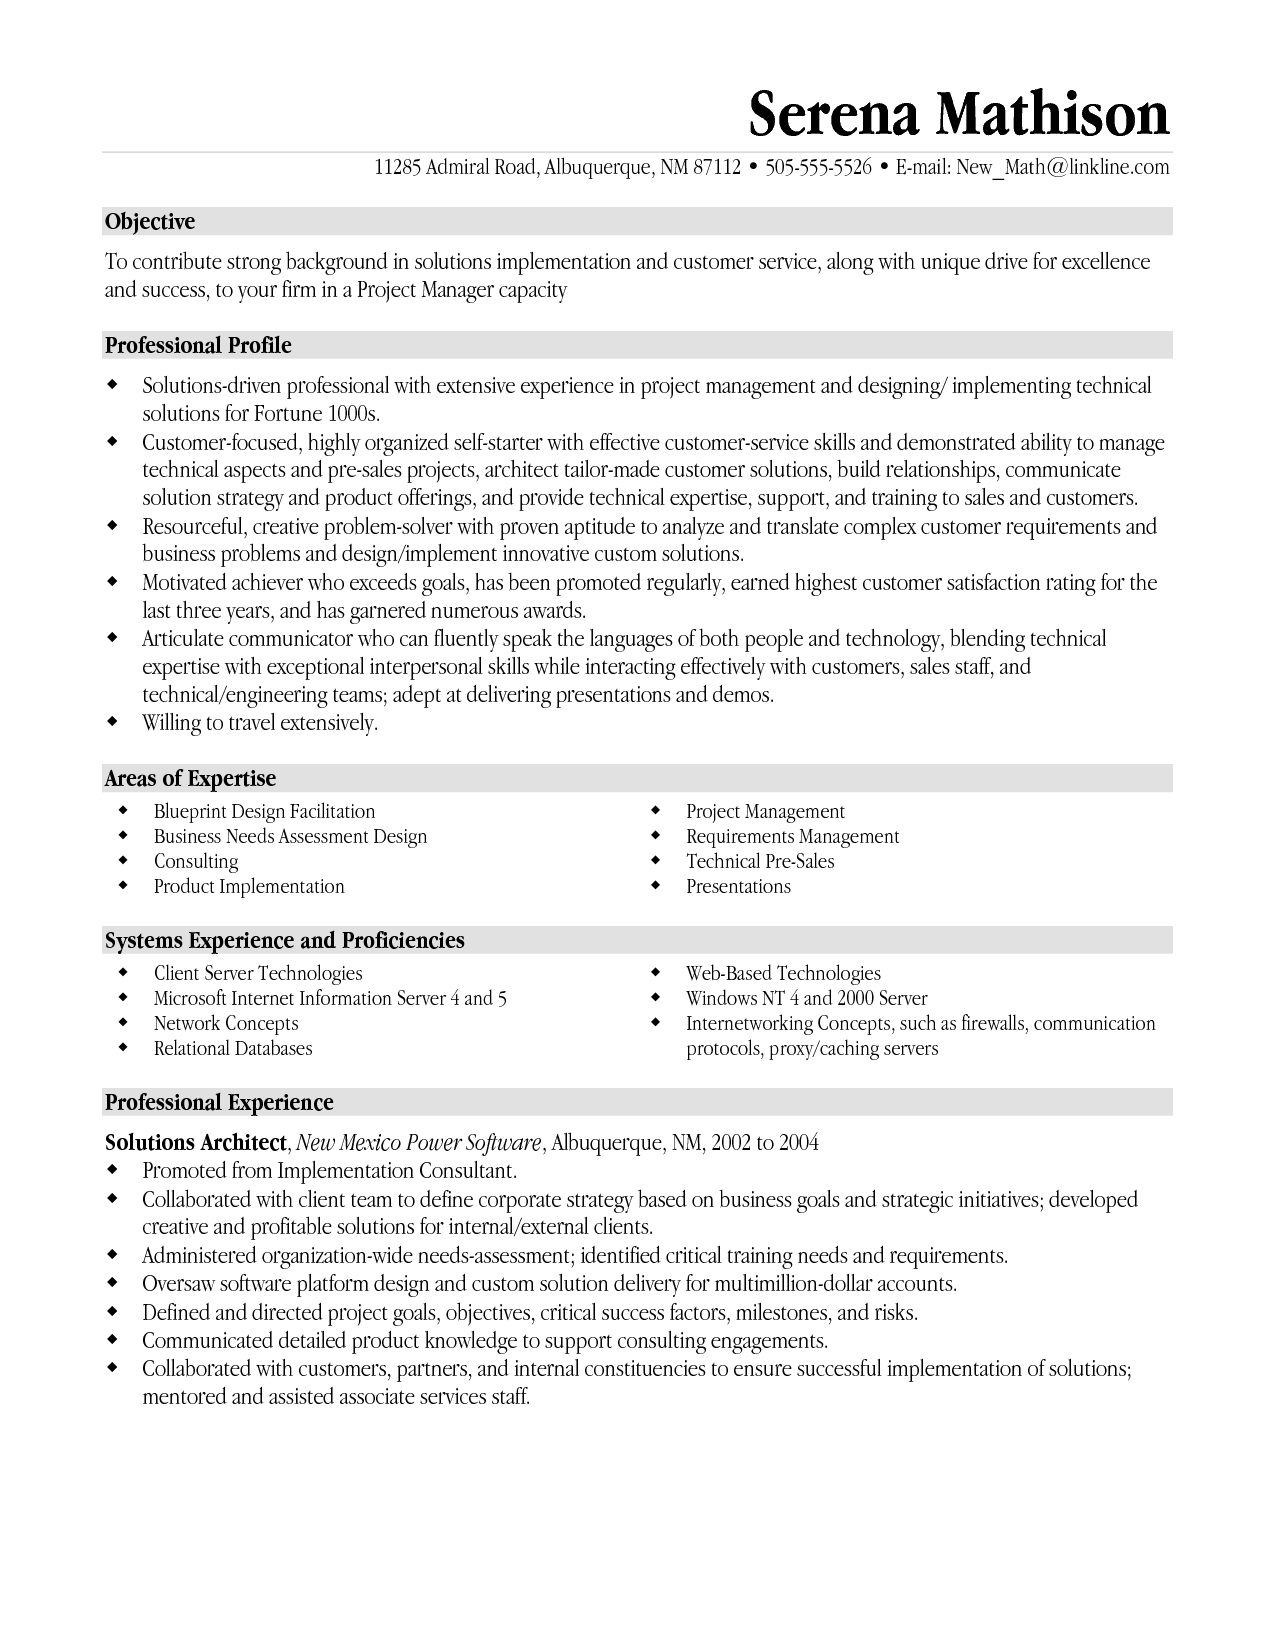 Resume templates project manager project management resume resume templates project manager project management resume malvernweather Gallery